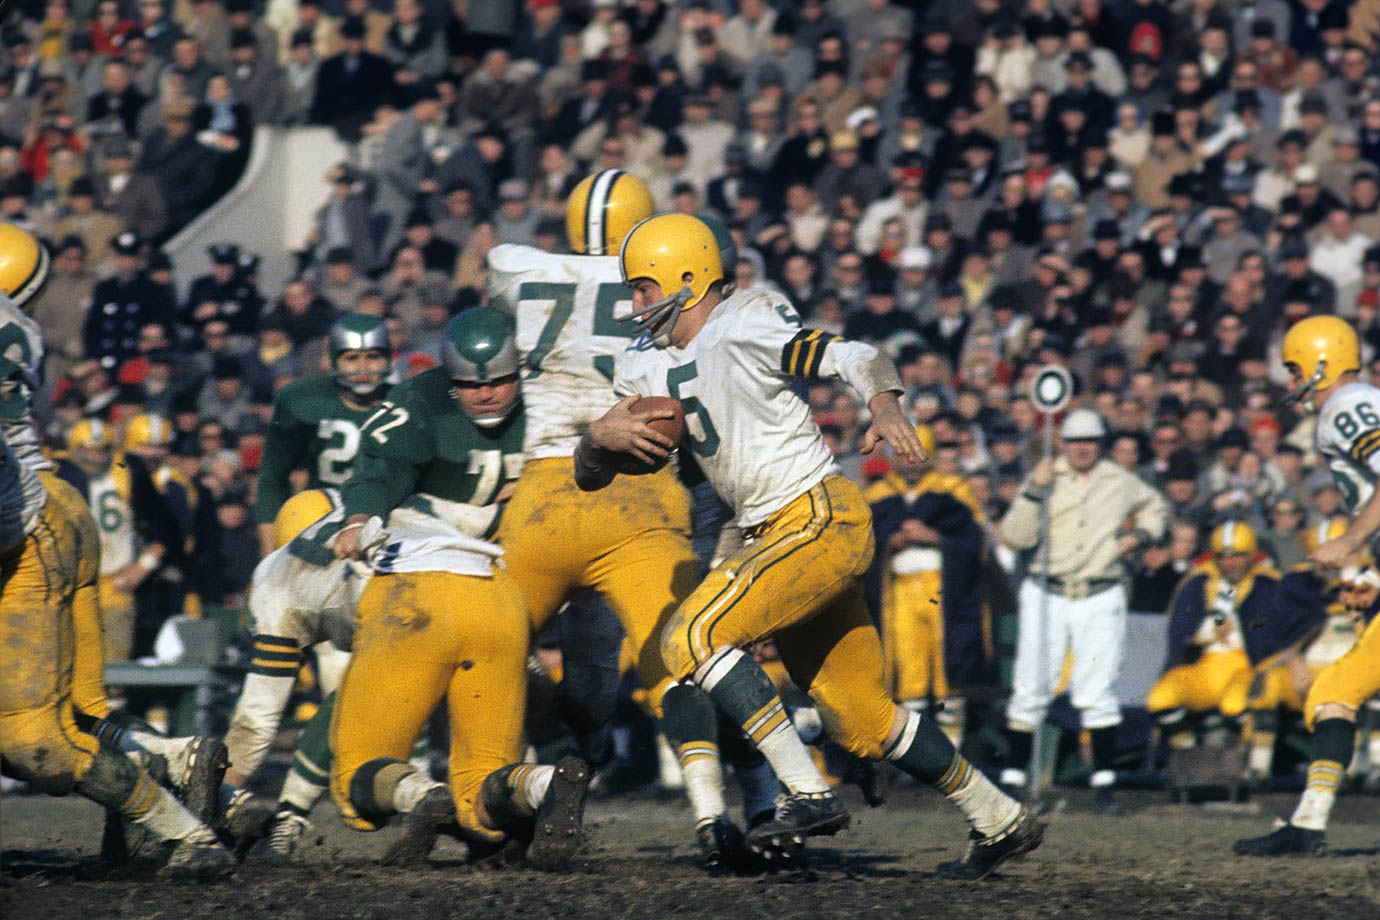 Dec. 26, 1960 (NFL Championship) — Green Bay Packers vs. Philadelphia Eagles